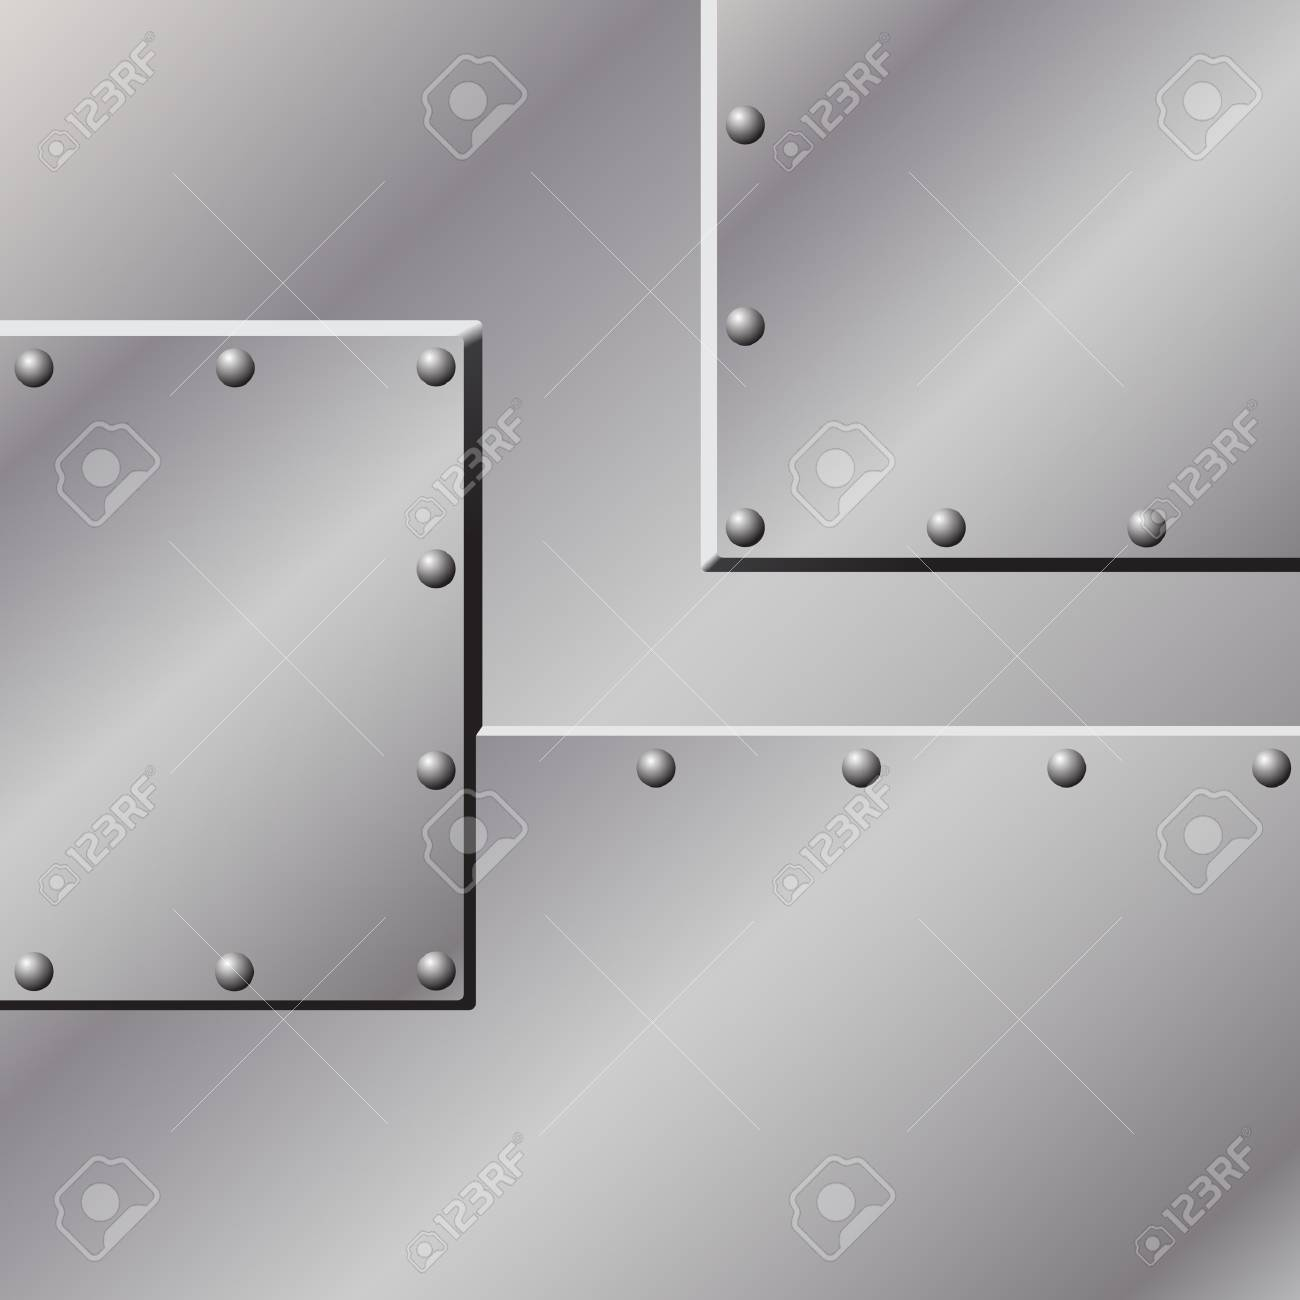 A Metal Background with Rivets Stock Vector - 7256400